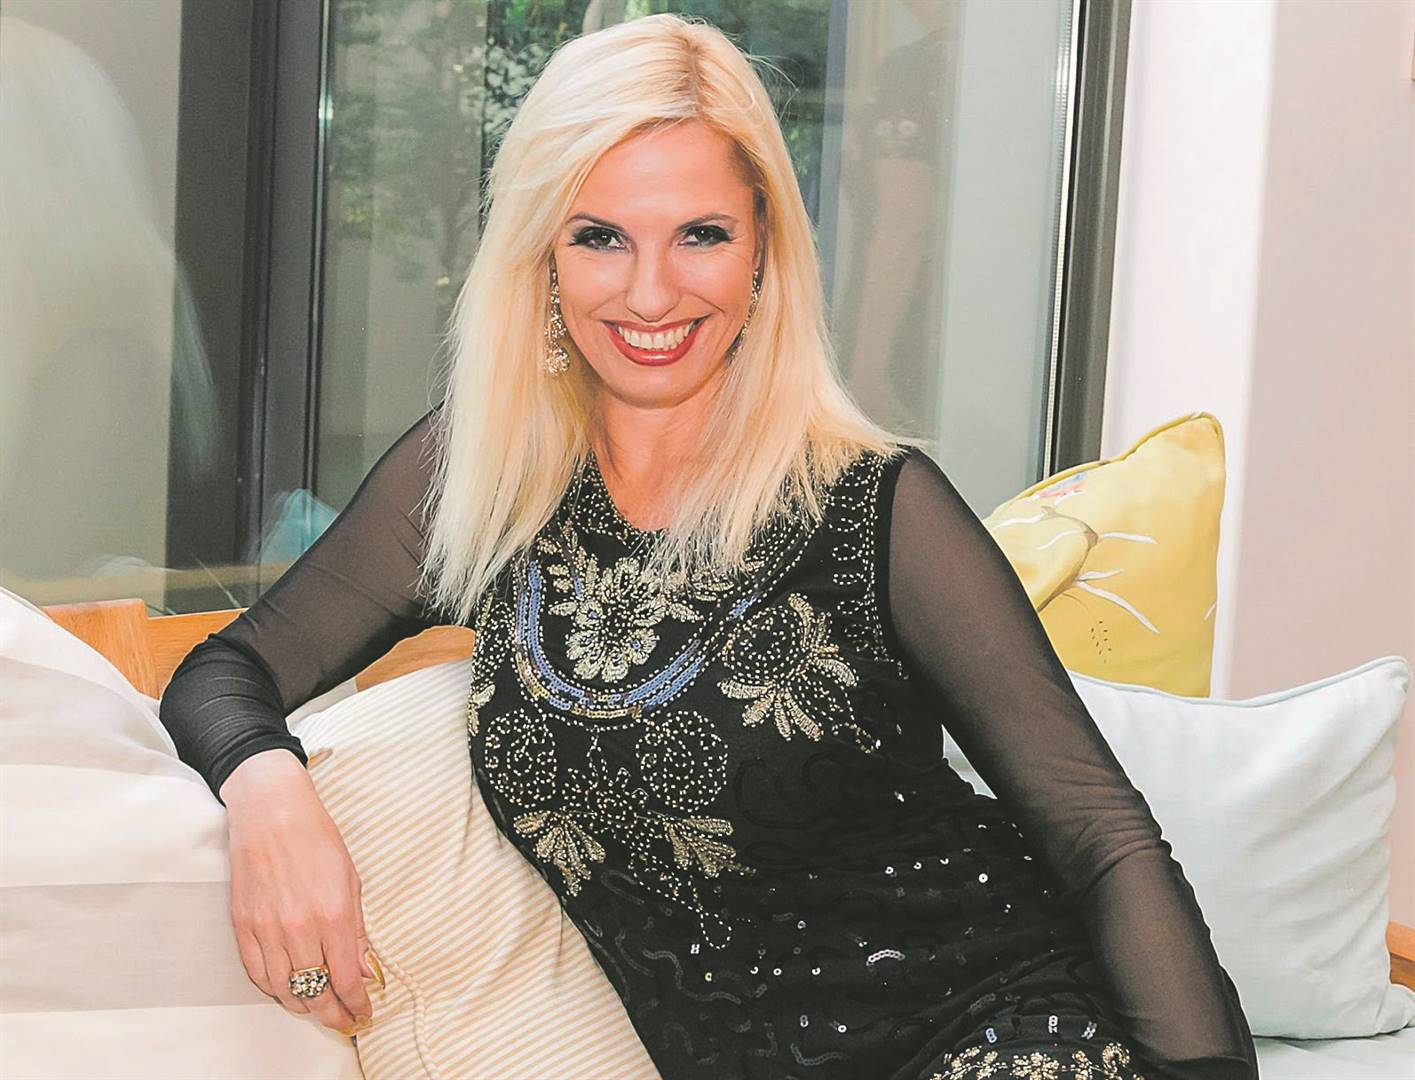 Christall Kay. Picture: iRealHousewives.com